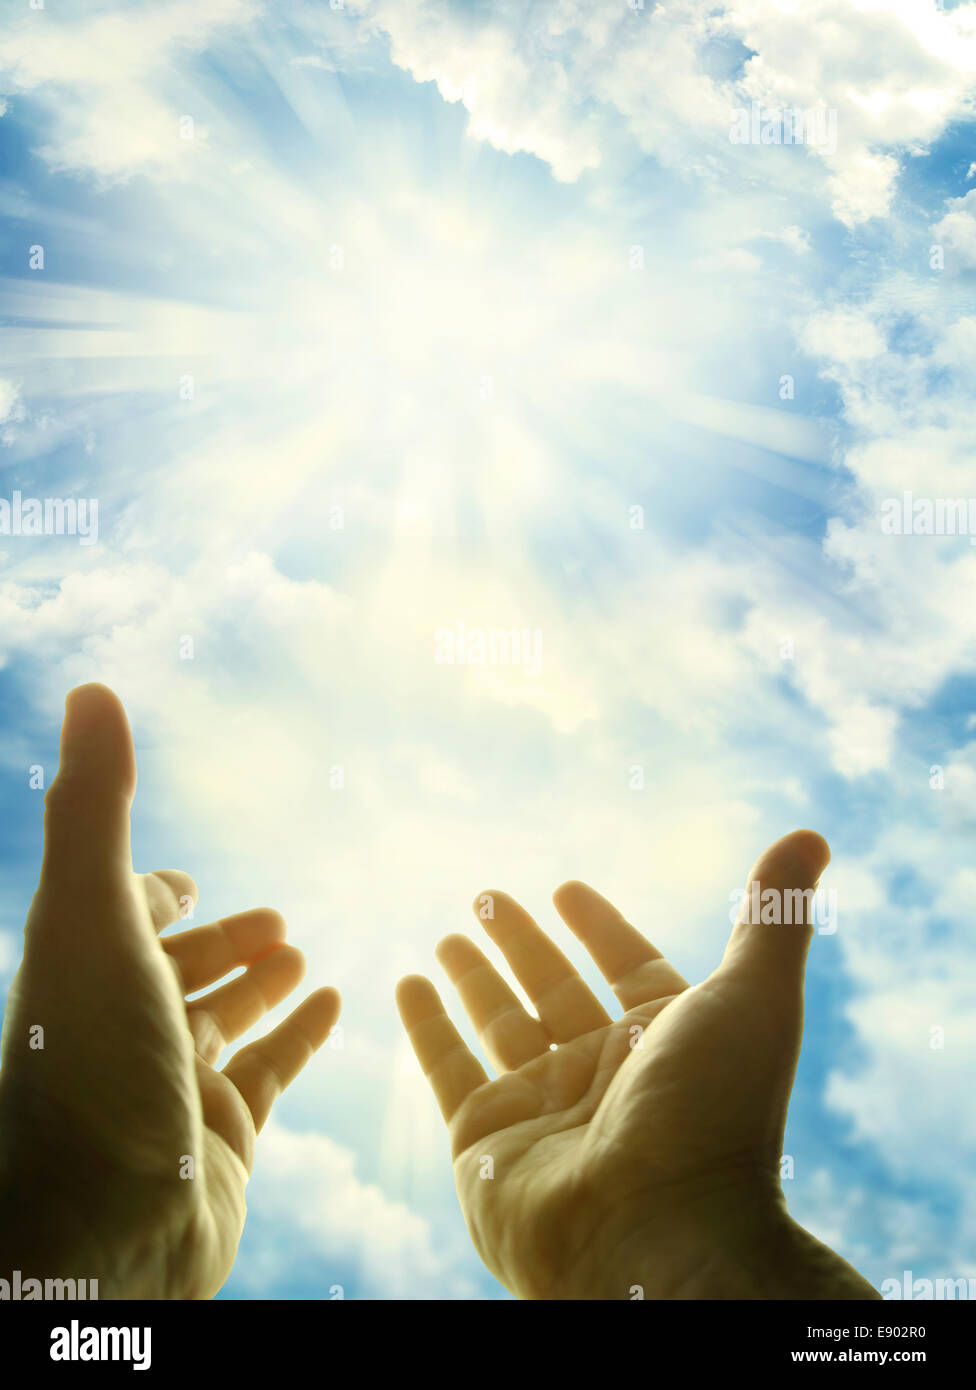 Hands reaching for the sky - Stock Image